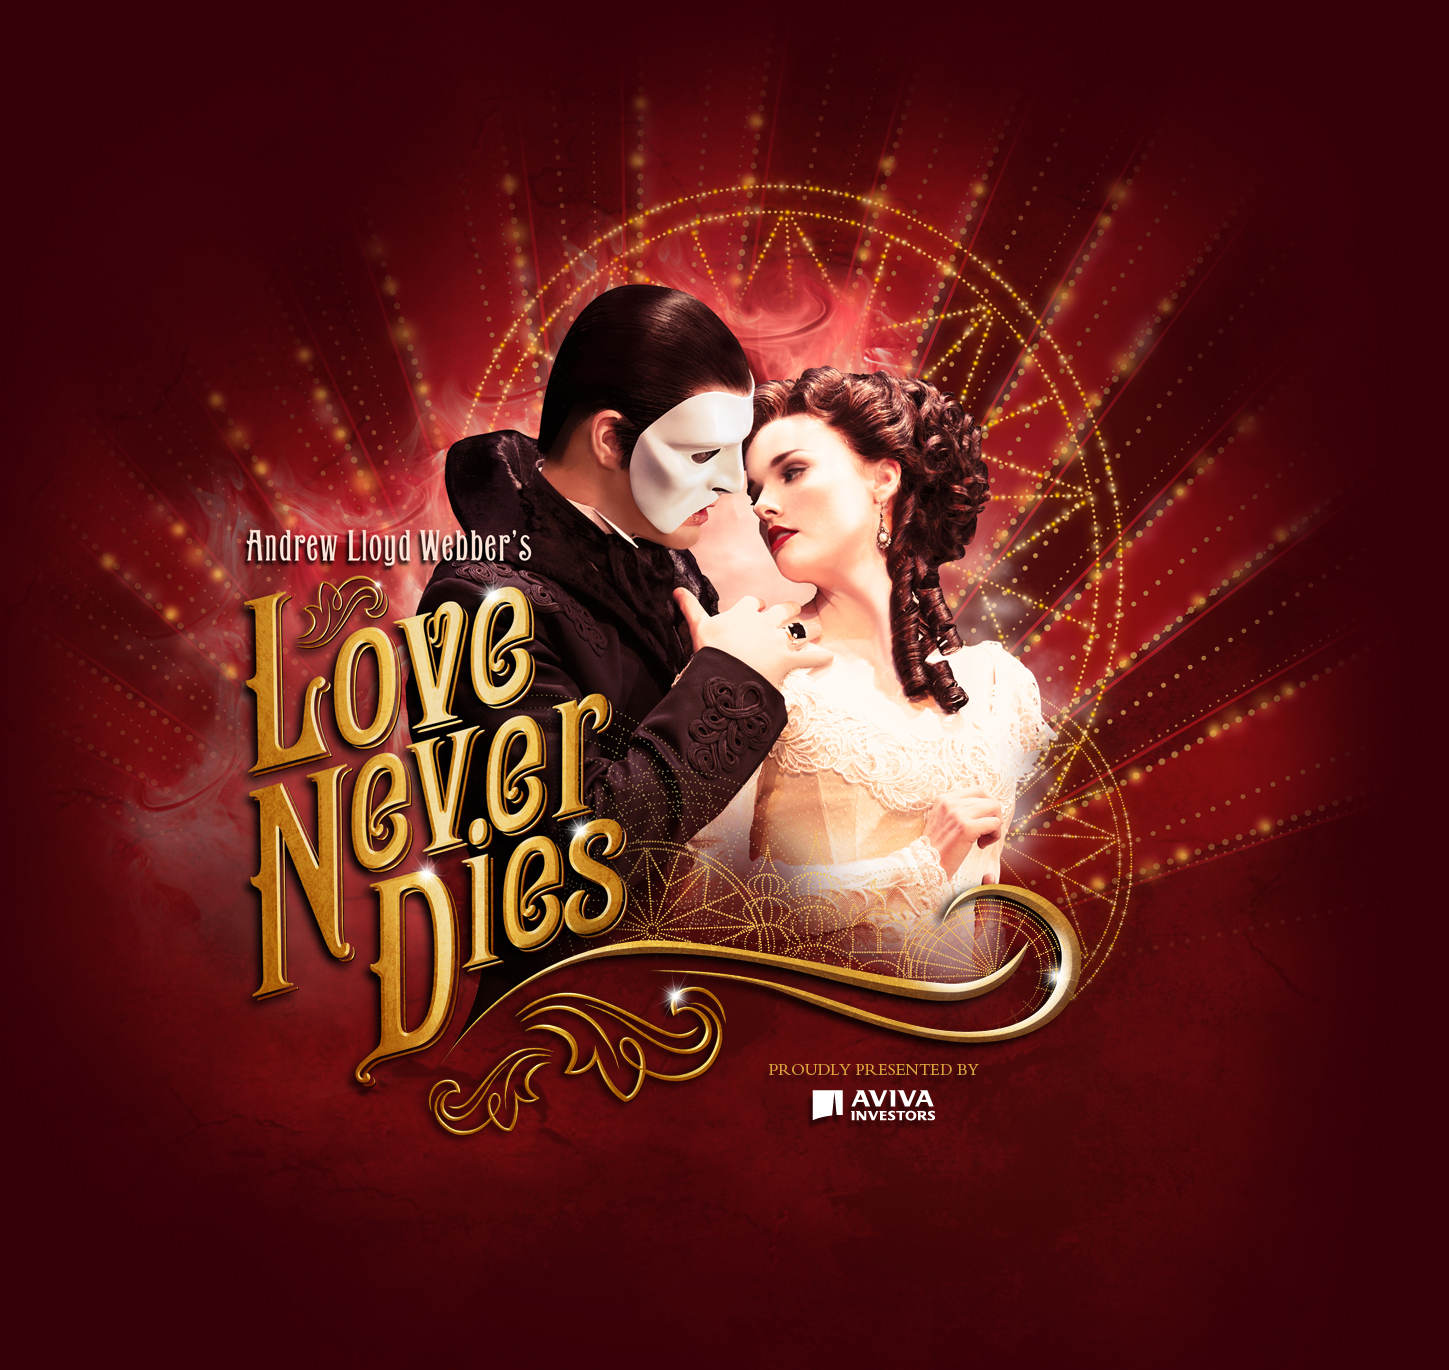 Love Never Dies Iphone Wallpaper : ALW Love Never Dies images Love Never Dies wallpaper HD wallpaper and background photos (30463160)